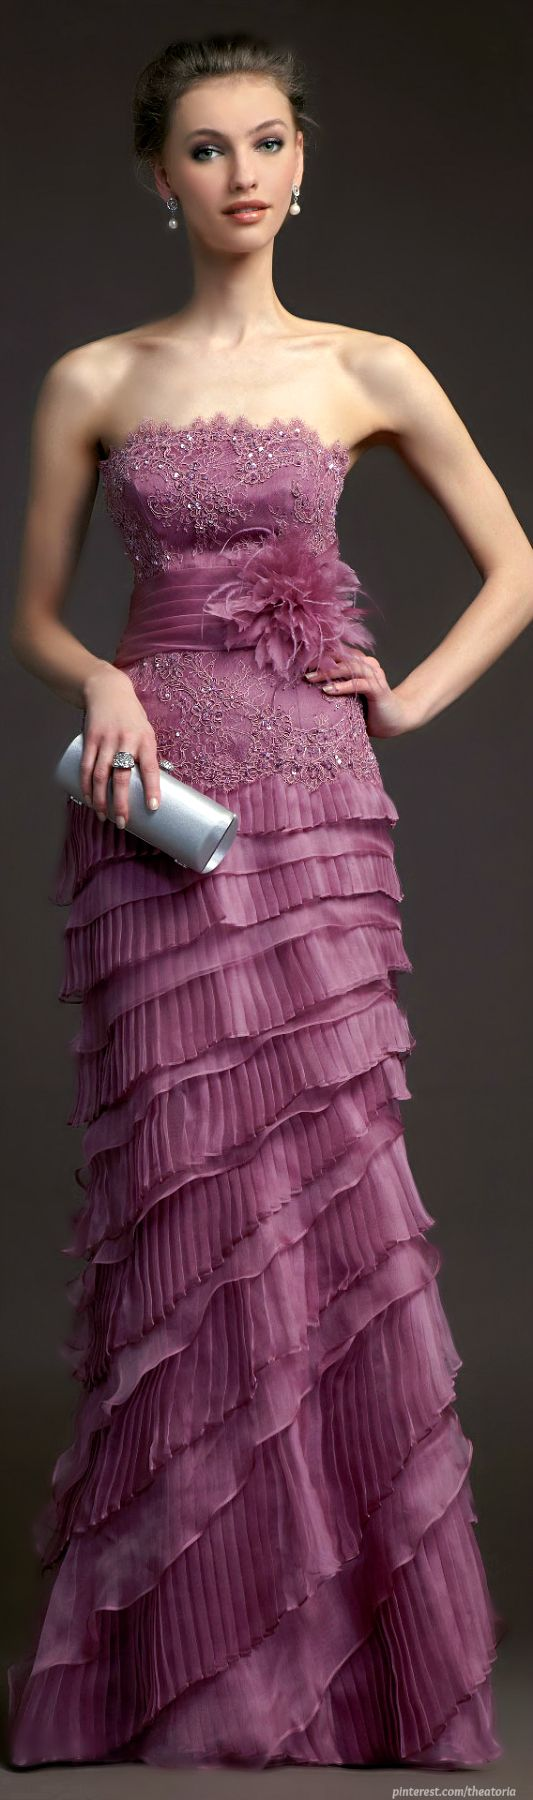 Her head looks photoshopped on. Ignore that and pay attention to the dress and clutch.  2014 New Purple Lace Tiered Formal Long Evening Dresses Gowns with Jacket (CL169)